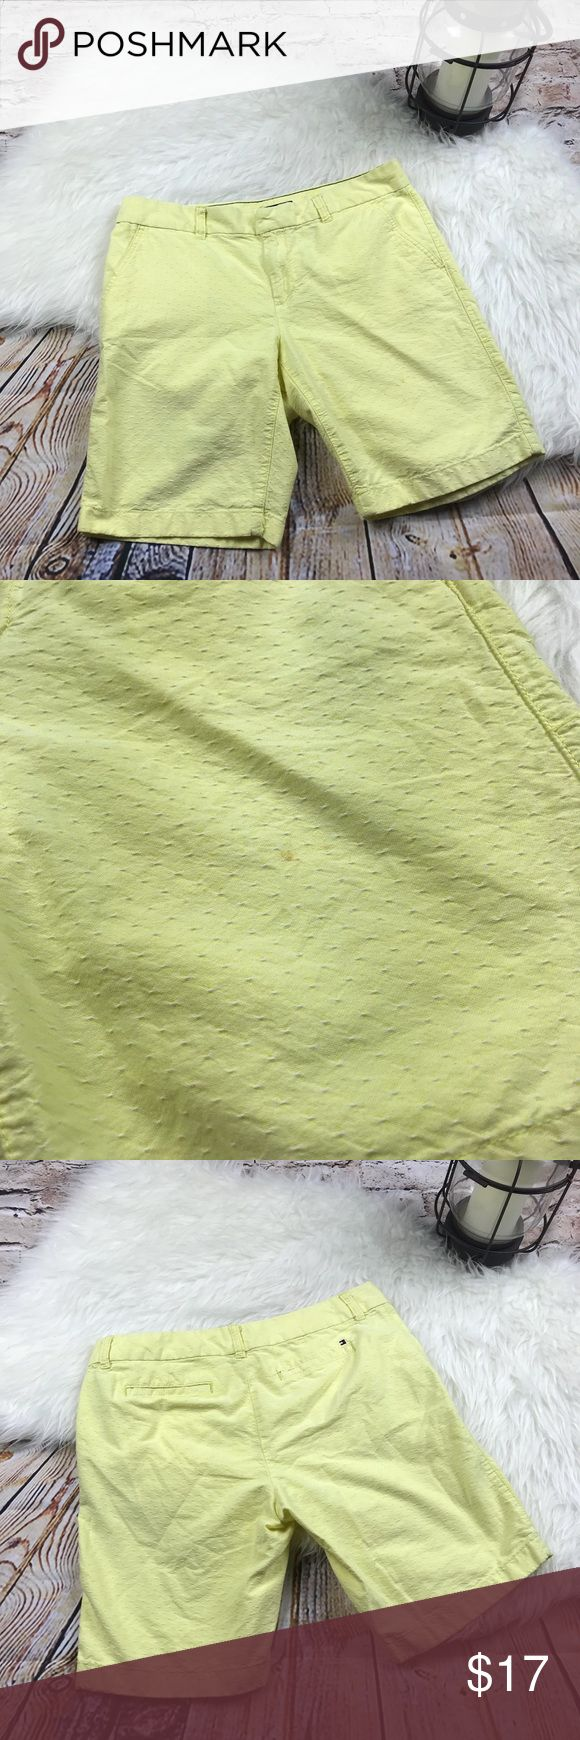 """Tommy Hilfiger womens yellow Bermuda shorts In good condition with only one flaw with is a very small stain on the front shown in the picture above. Otherwise no visible flaws. A light yellow color pair of shorts with white designs.   Size-8 Waist about-16"""" Rise about-9"""" Inseem about-9""""  C19 Tommy Hilfiger Shorts Bermudas"""